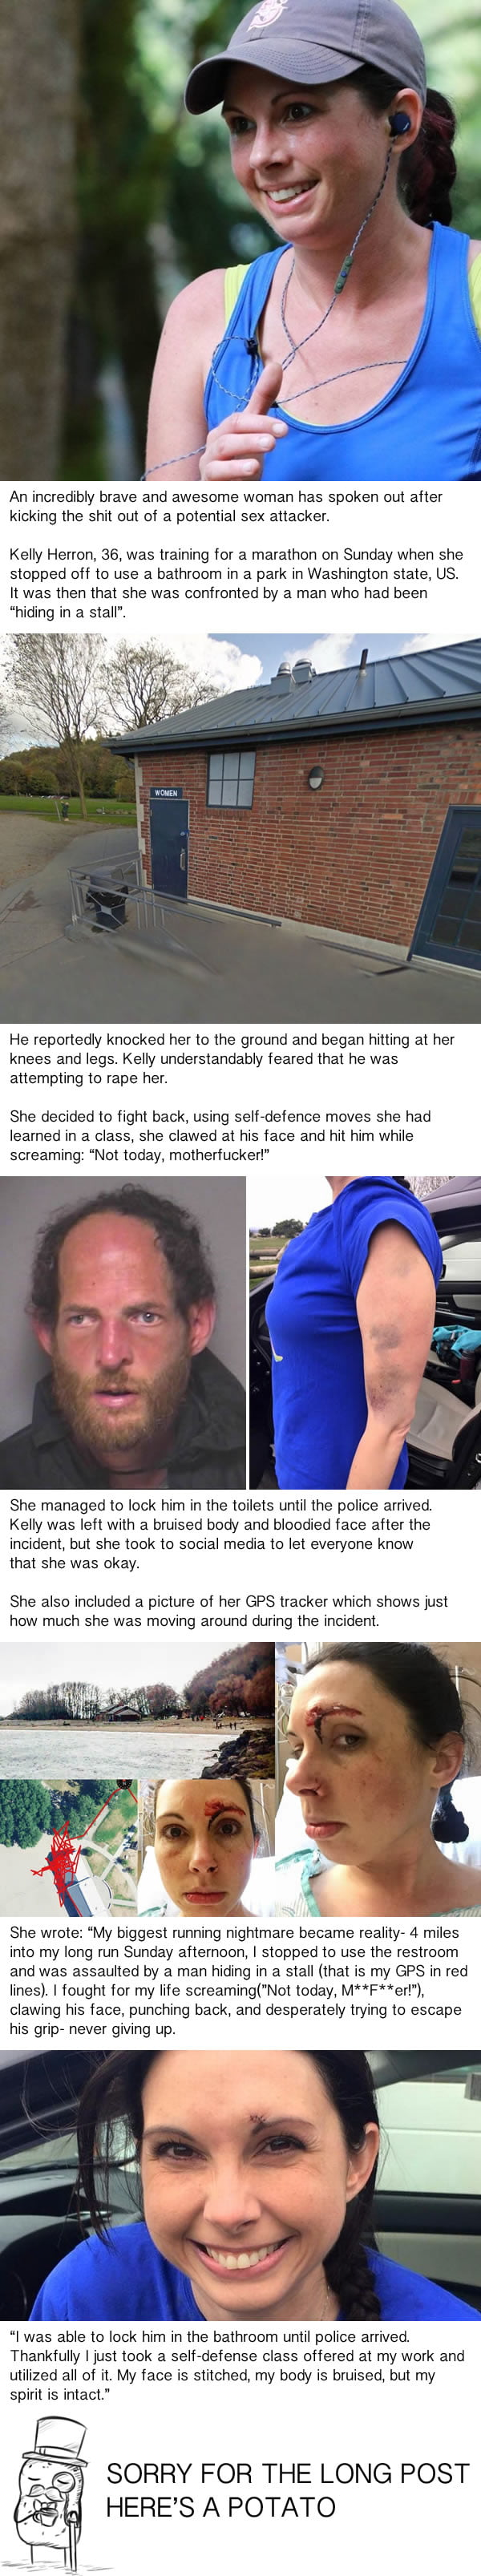 Brave Woman Beats The Shit Out Of 'Sex Attacker' In Toilets